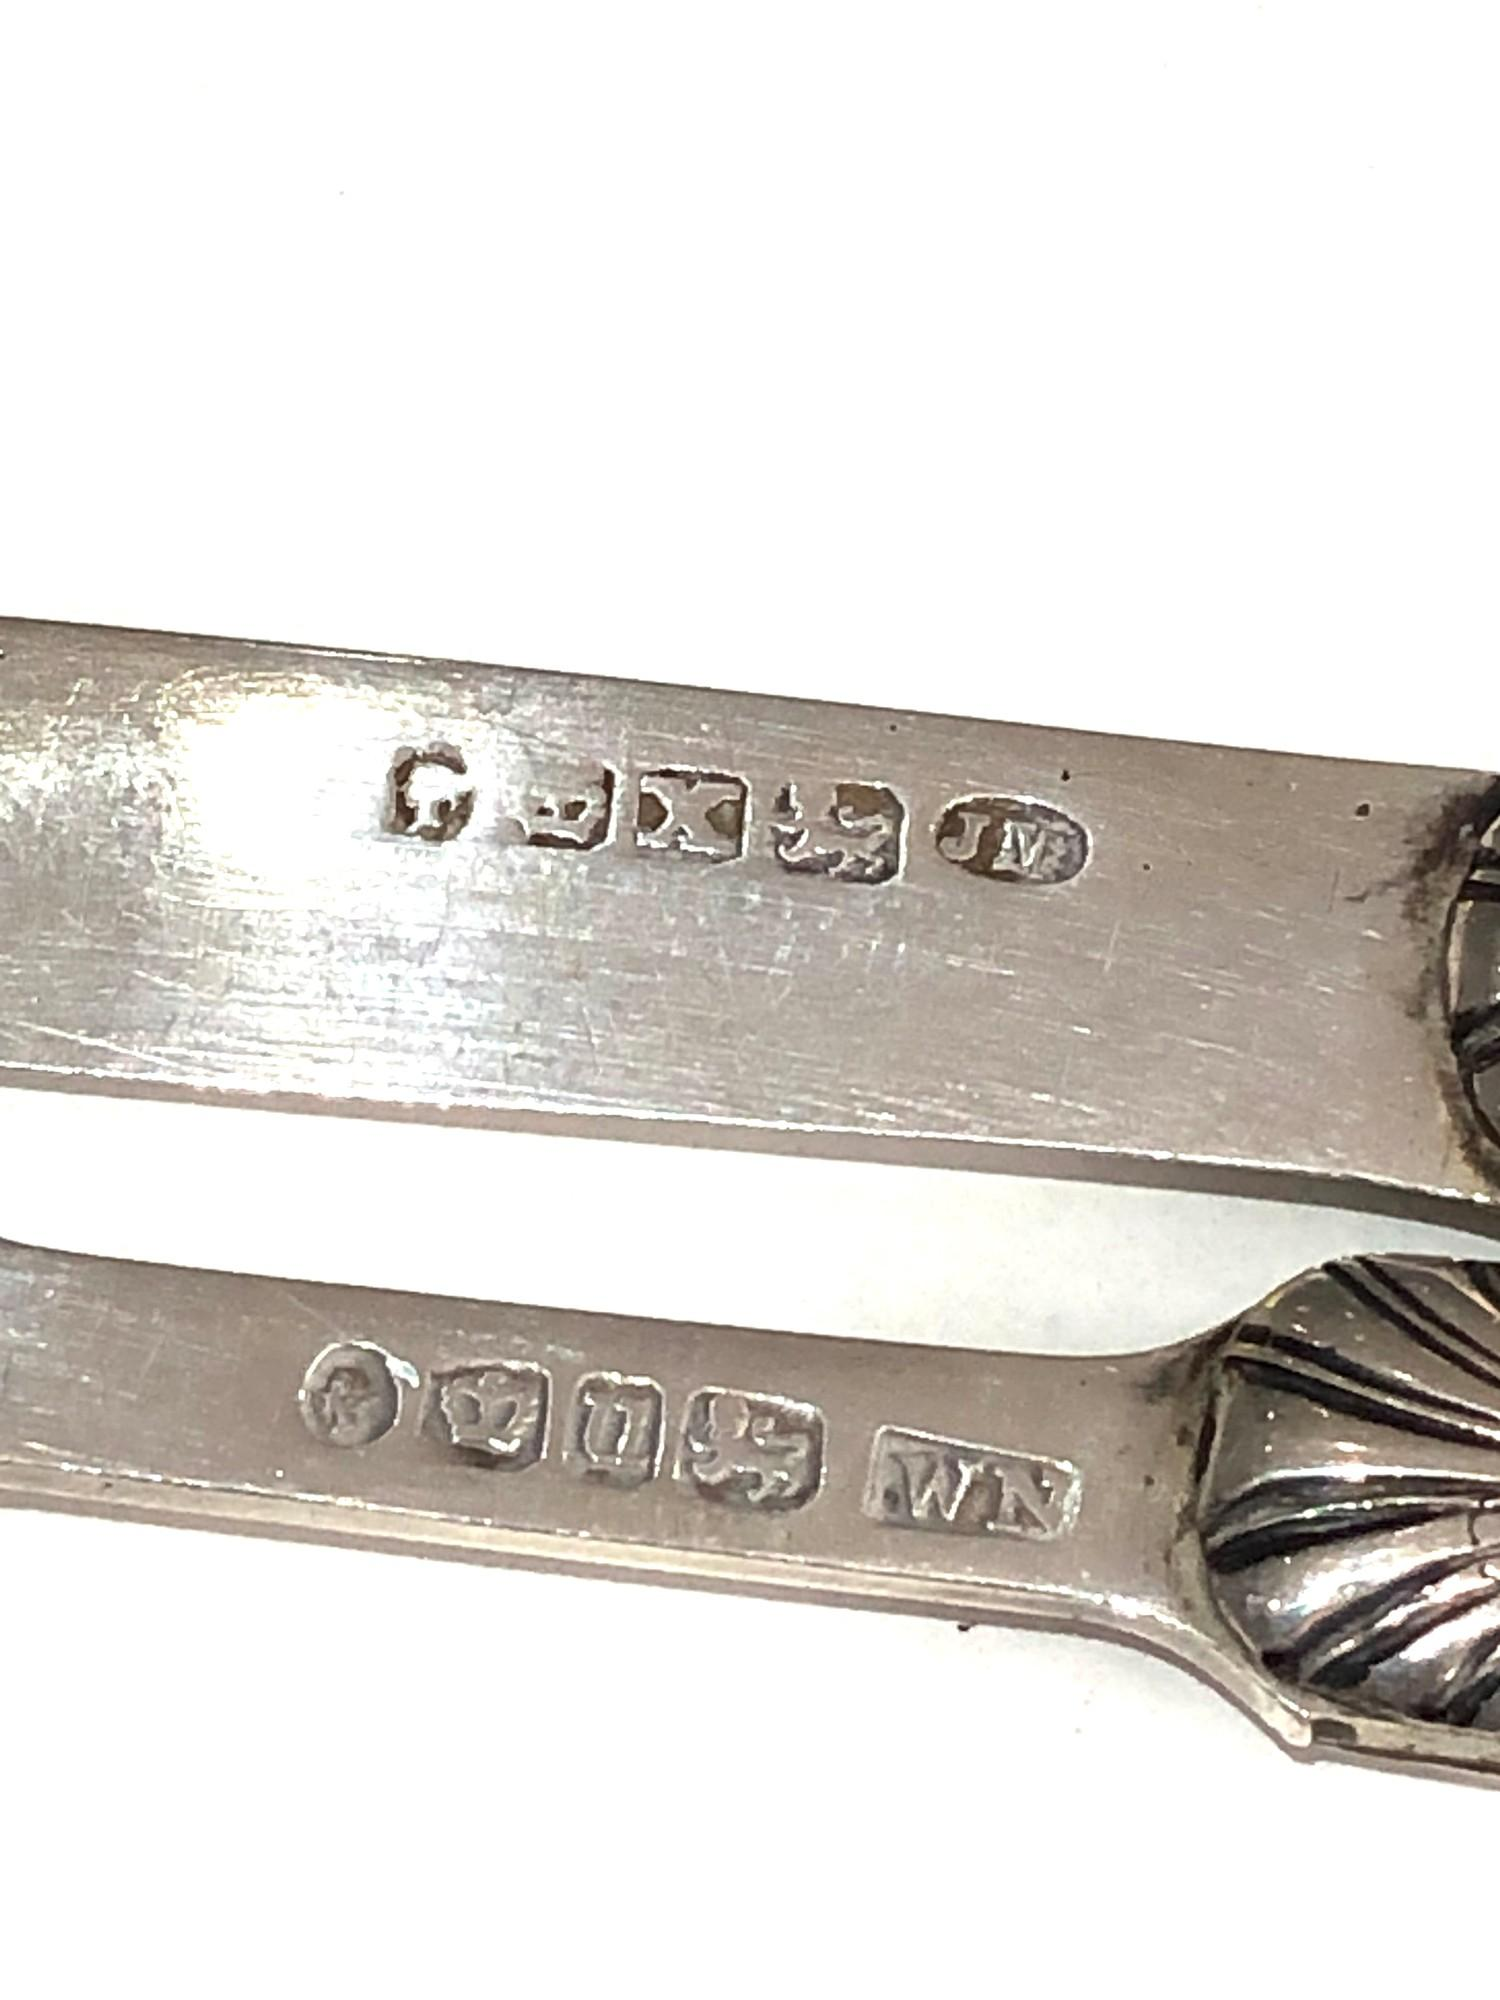 Antique silver & mop knife and fork both have victorian silver hallmarks matching mop handles with - Image 6 of 6